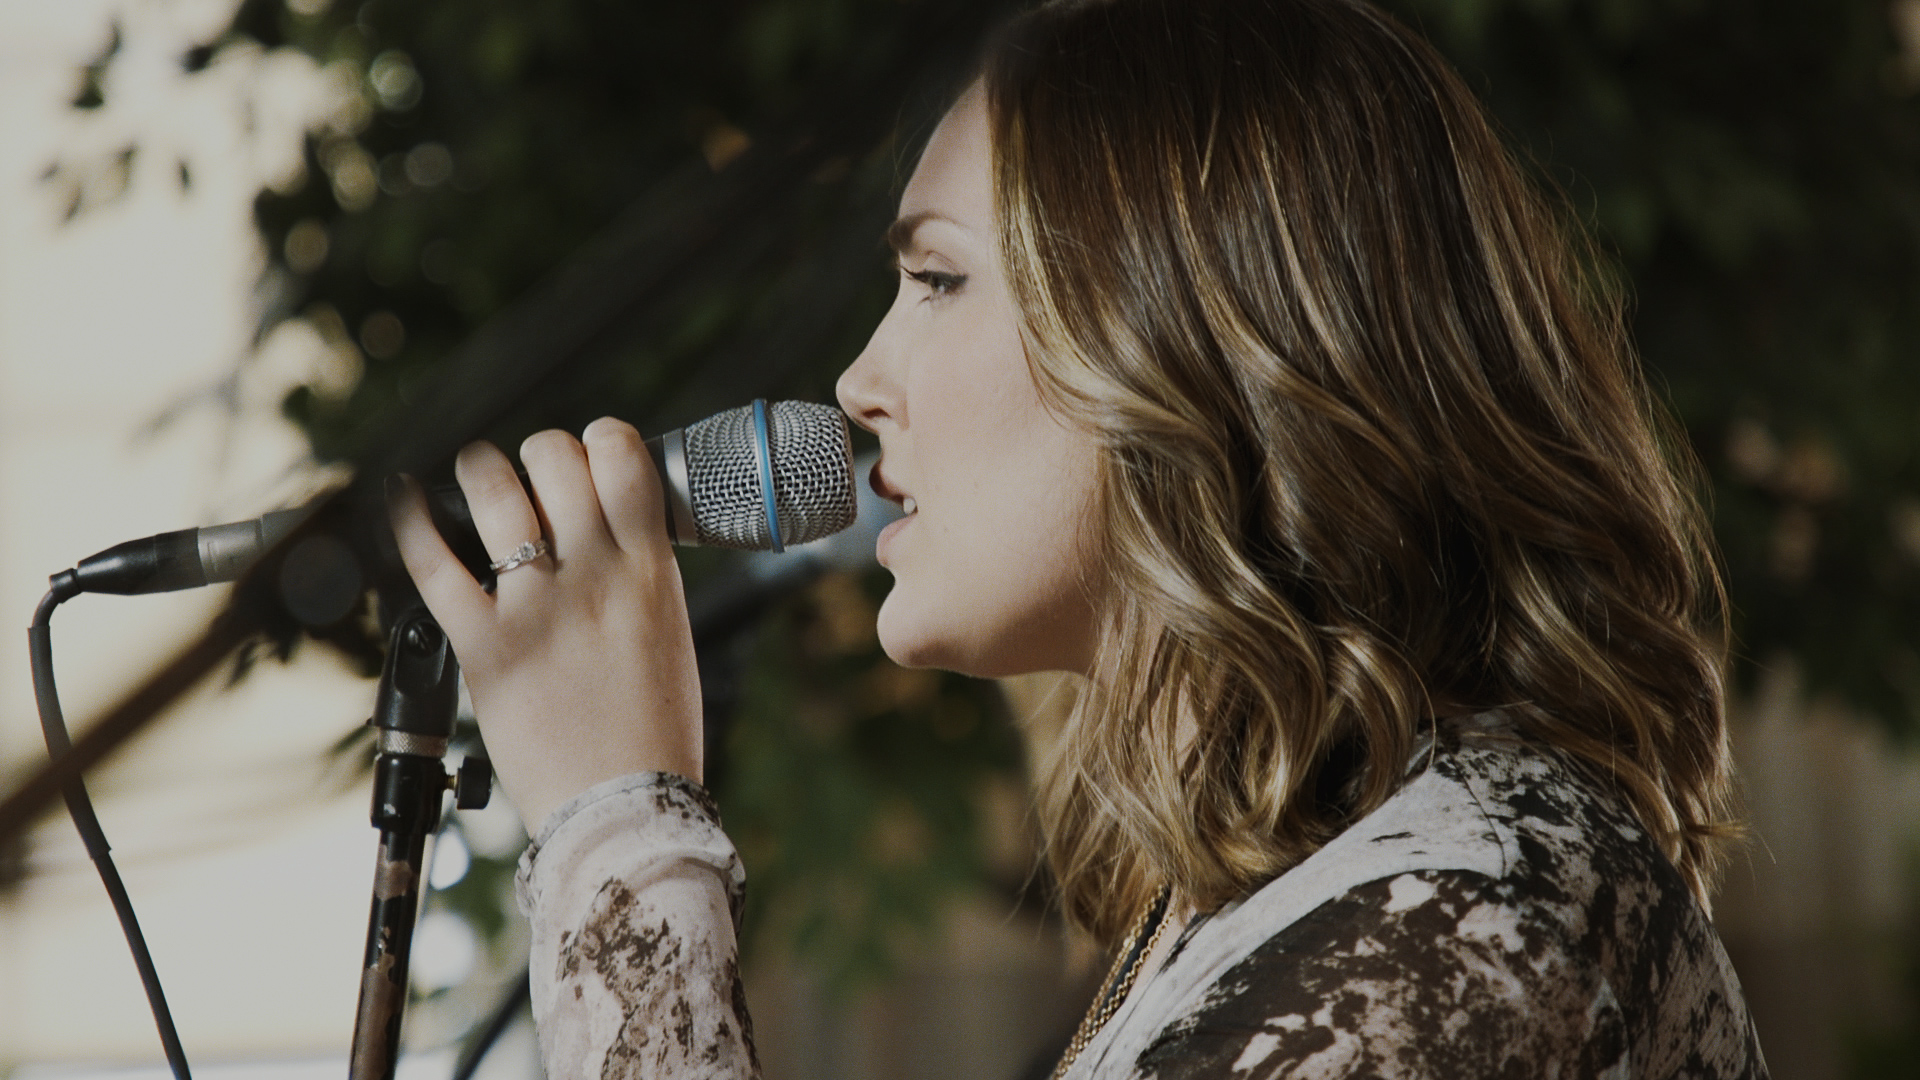 Julia Shuman, lead vocalist for the band Tell Scarlet